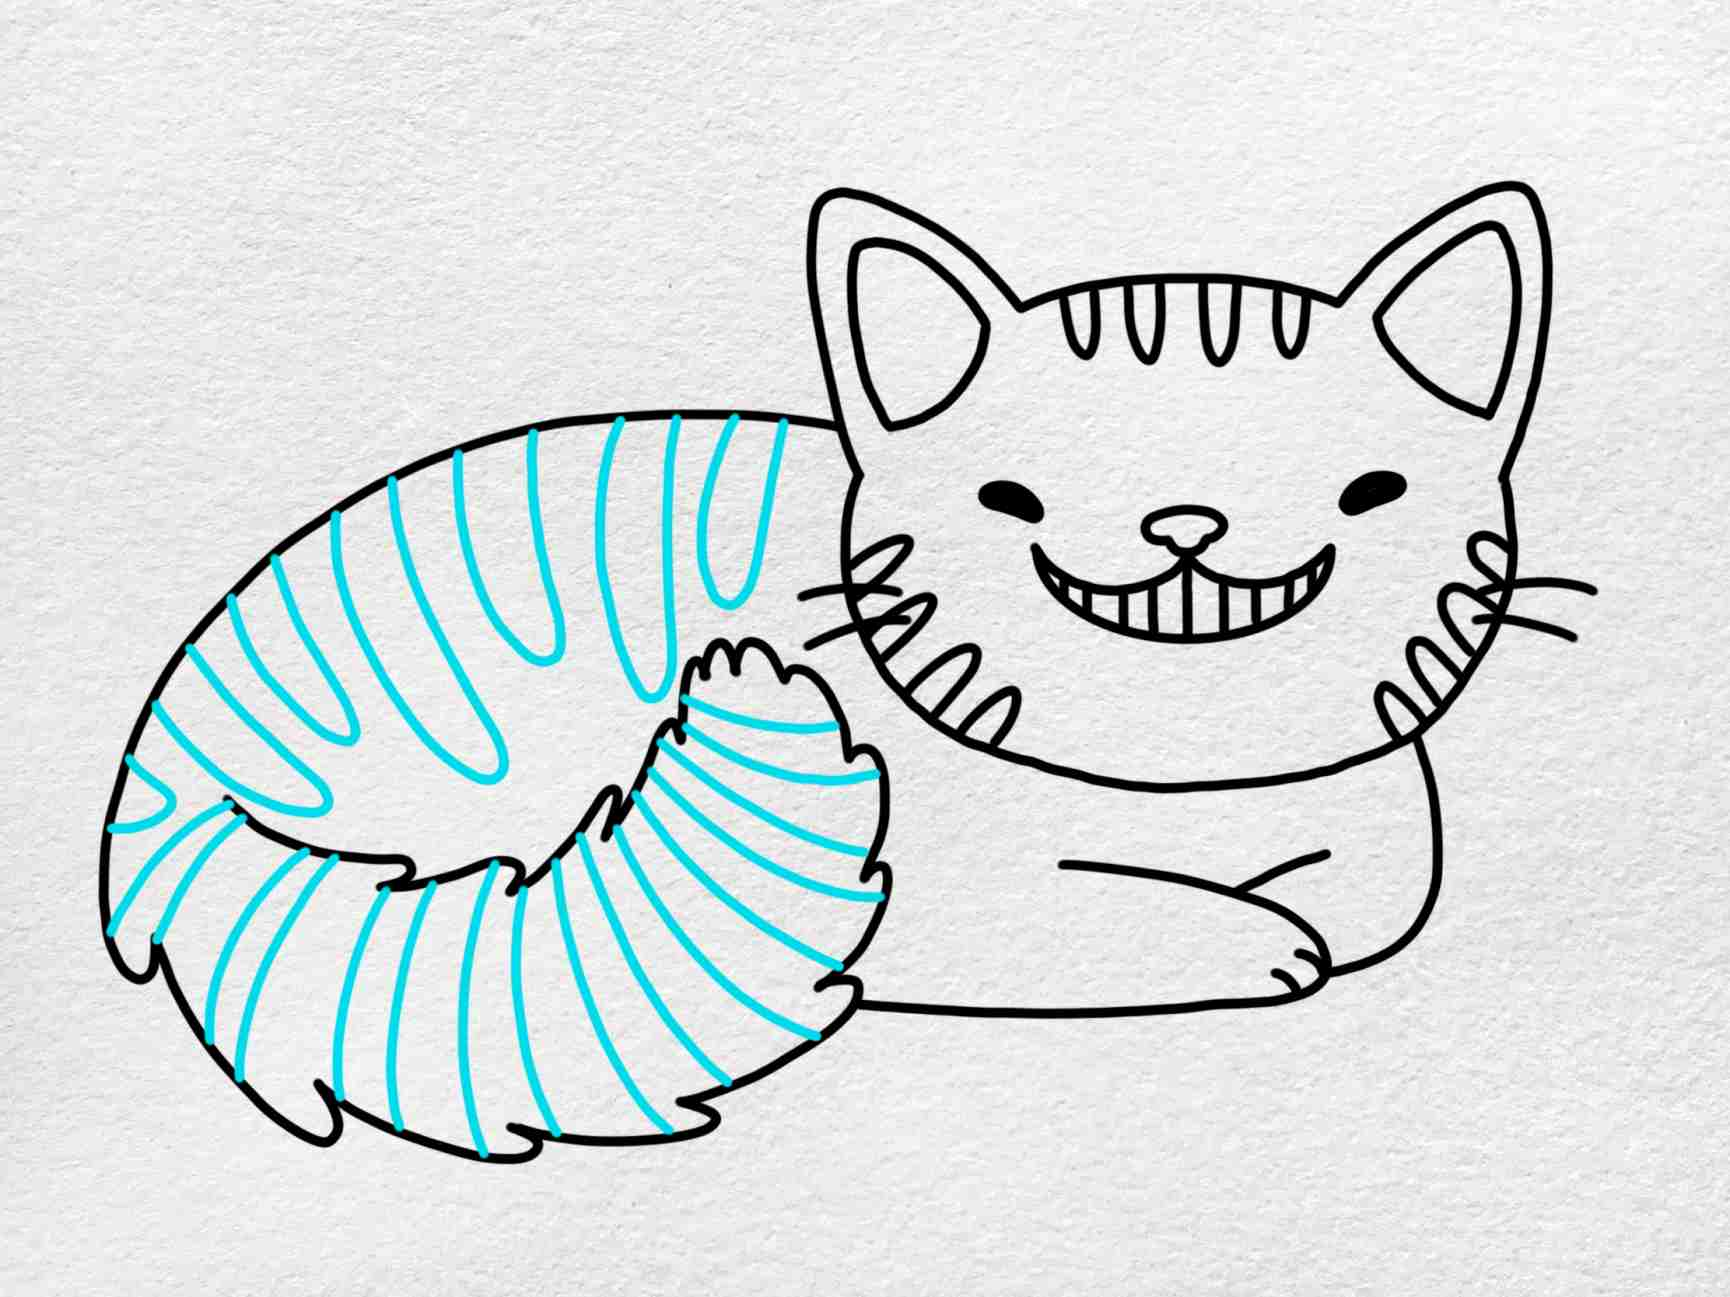 Cheshire Cat Drawing: Step 7